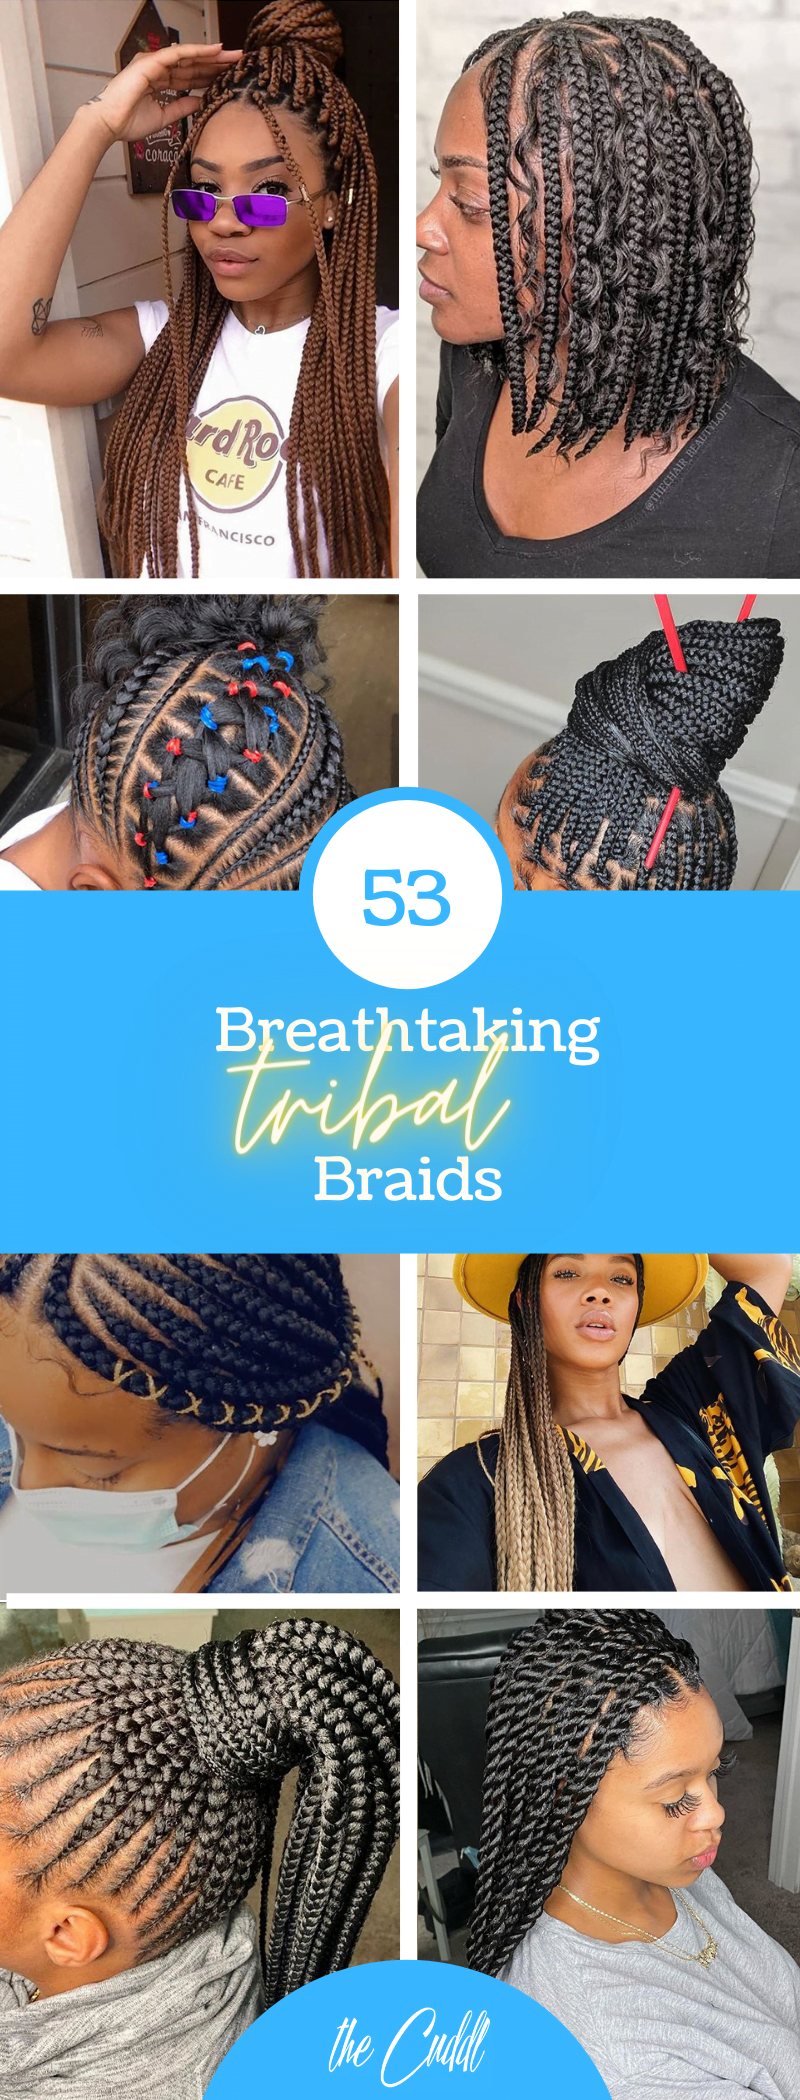 50 Mind-Blowing Tribal Braids Hairstyle Ideas Perfect For Everyday Living